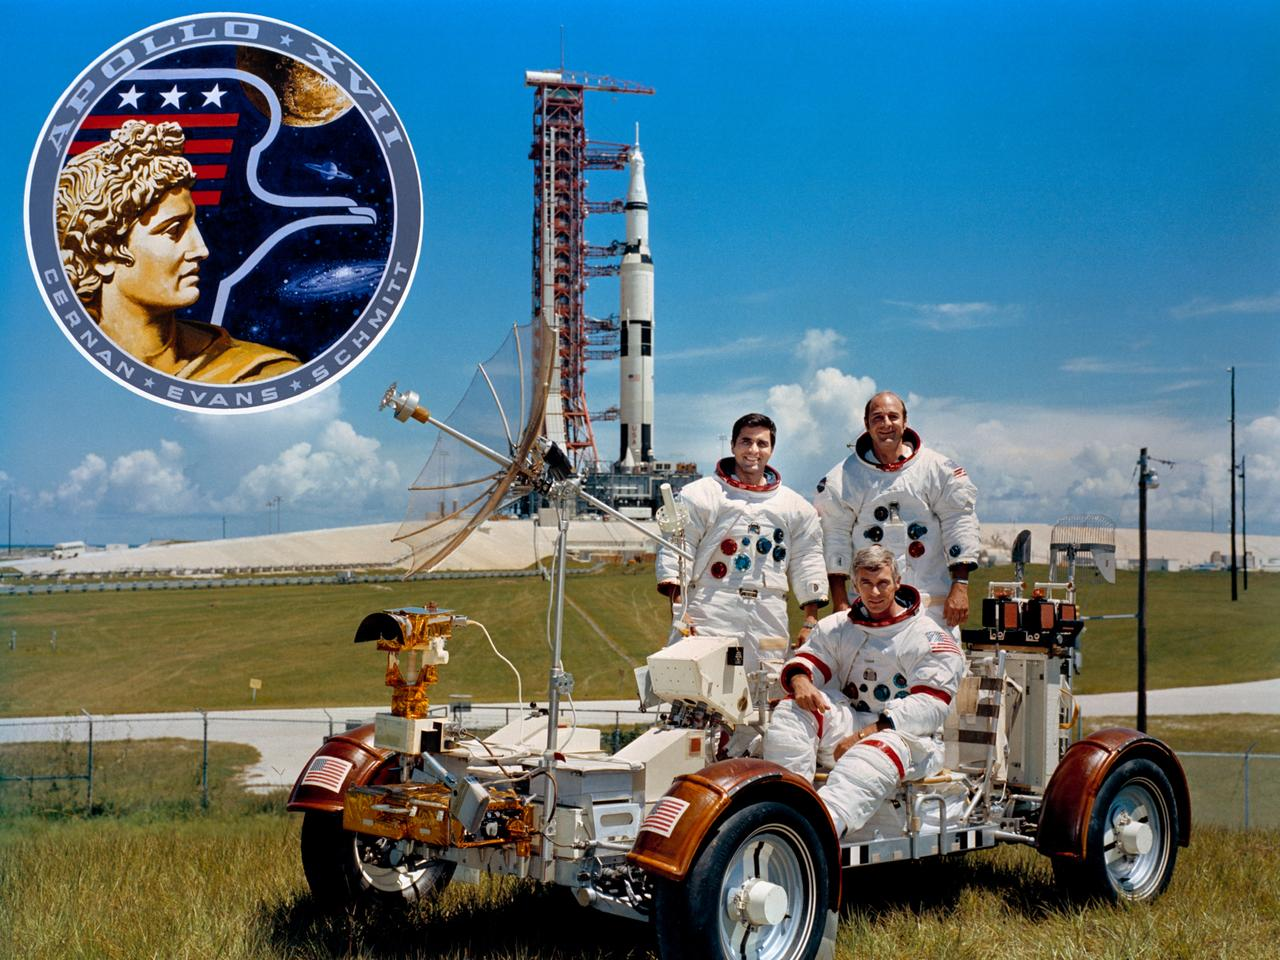 The prime crew members of the Apollo 17 lunar landing mission. They are Eugene A. Cernan (seated), commander; Ronald E. Evans (standing on right), command module pilot; and Harrison H. Schmitt, lunar module pilot. They are photographed with a Lunar Roving Vehicle (LRV) trainer. (Photo via NASA)